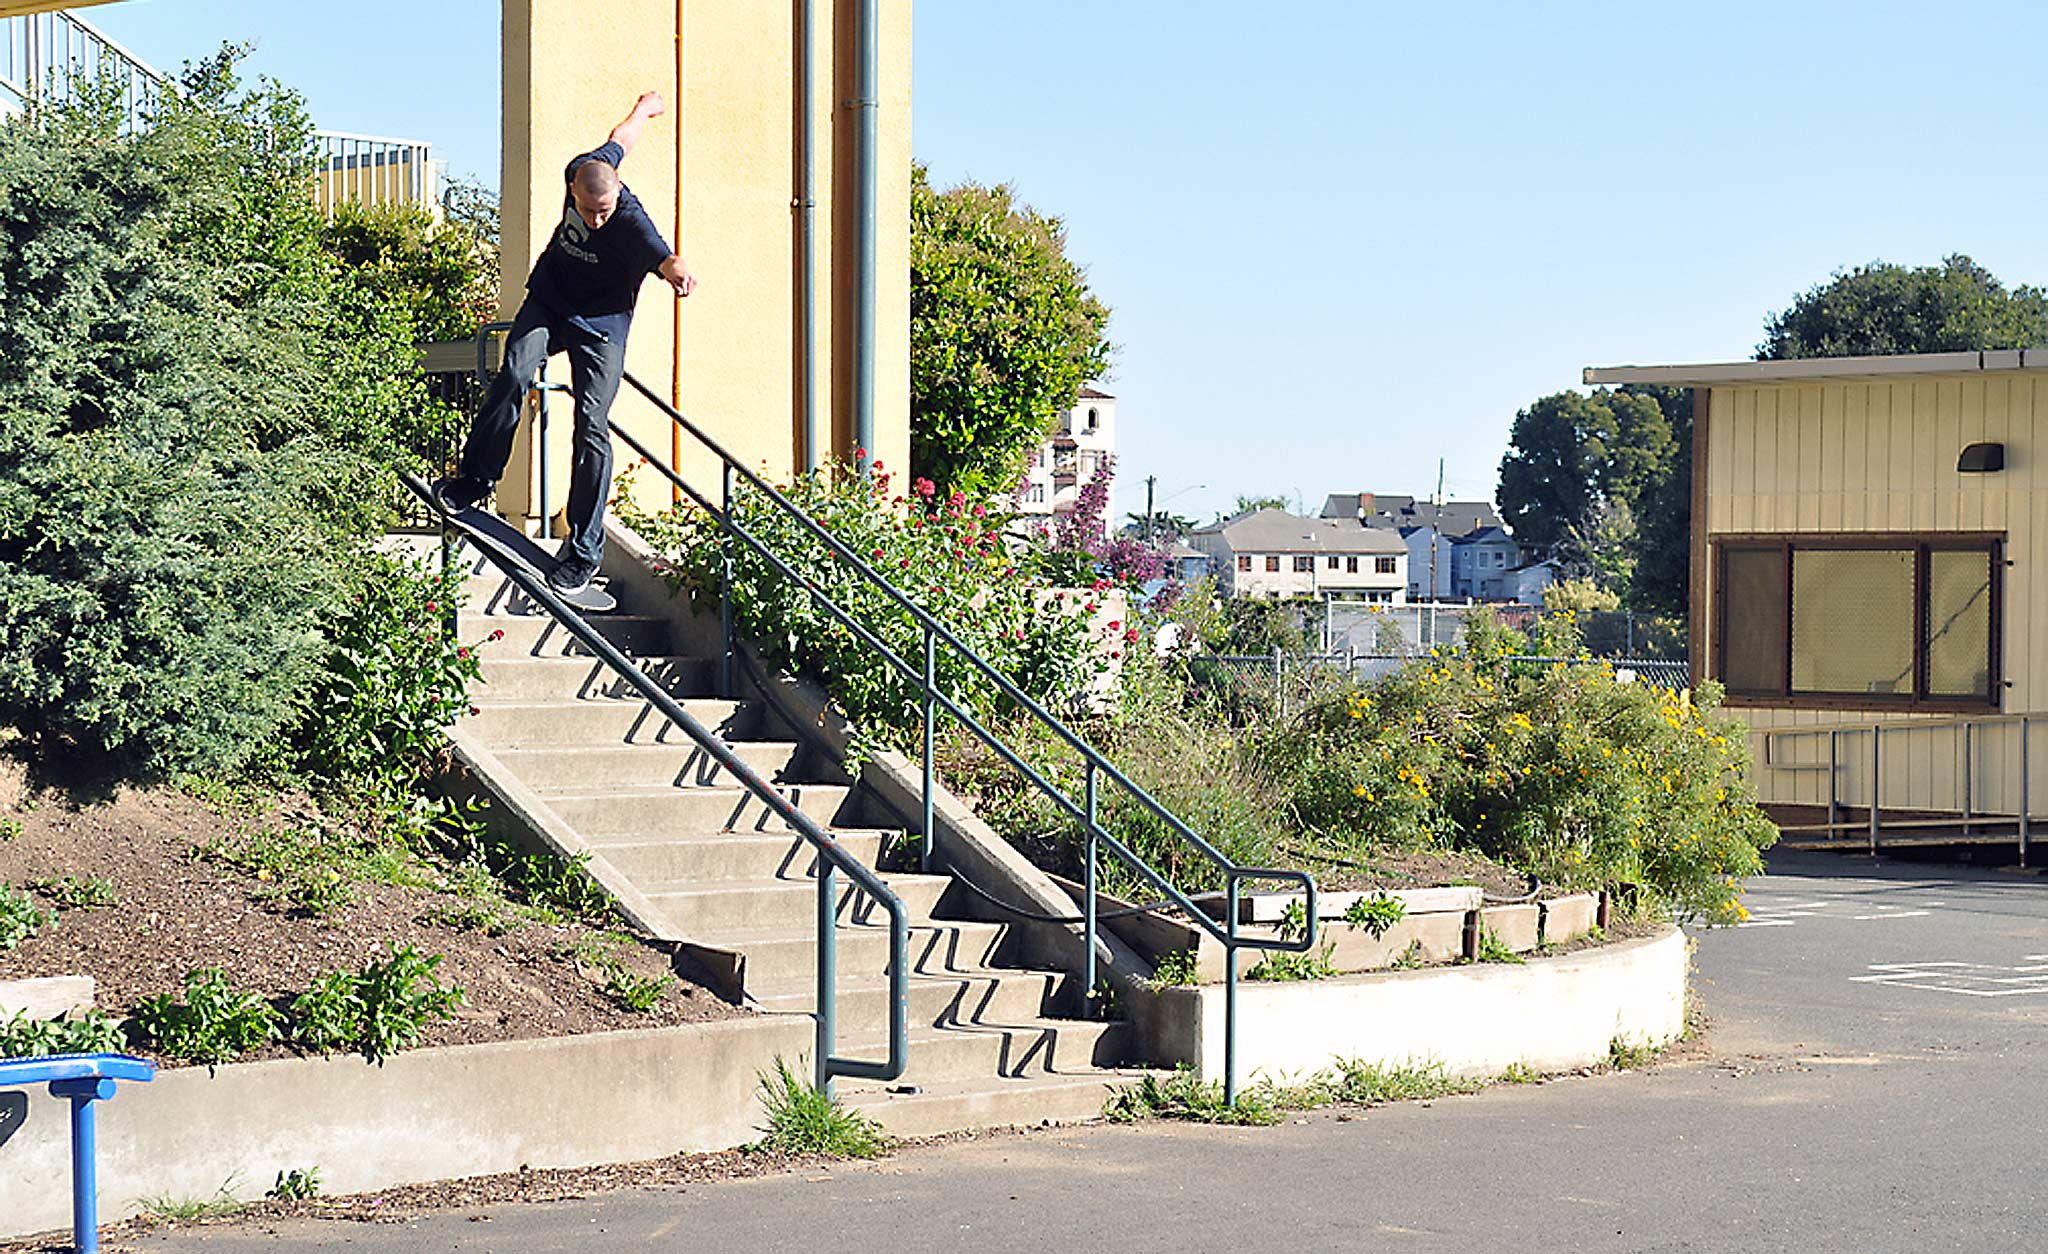 Sean Meeker, Smith Grind